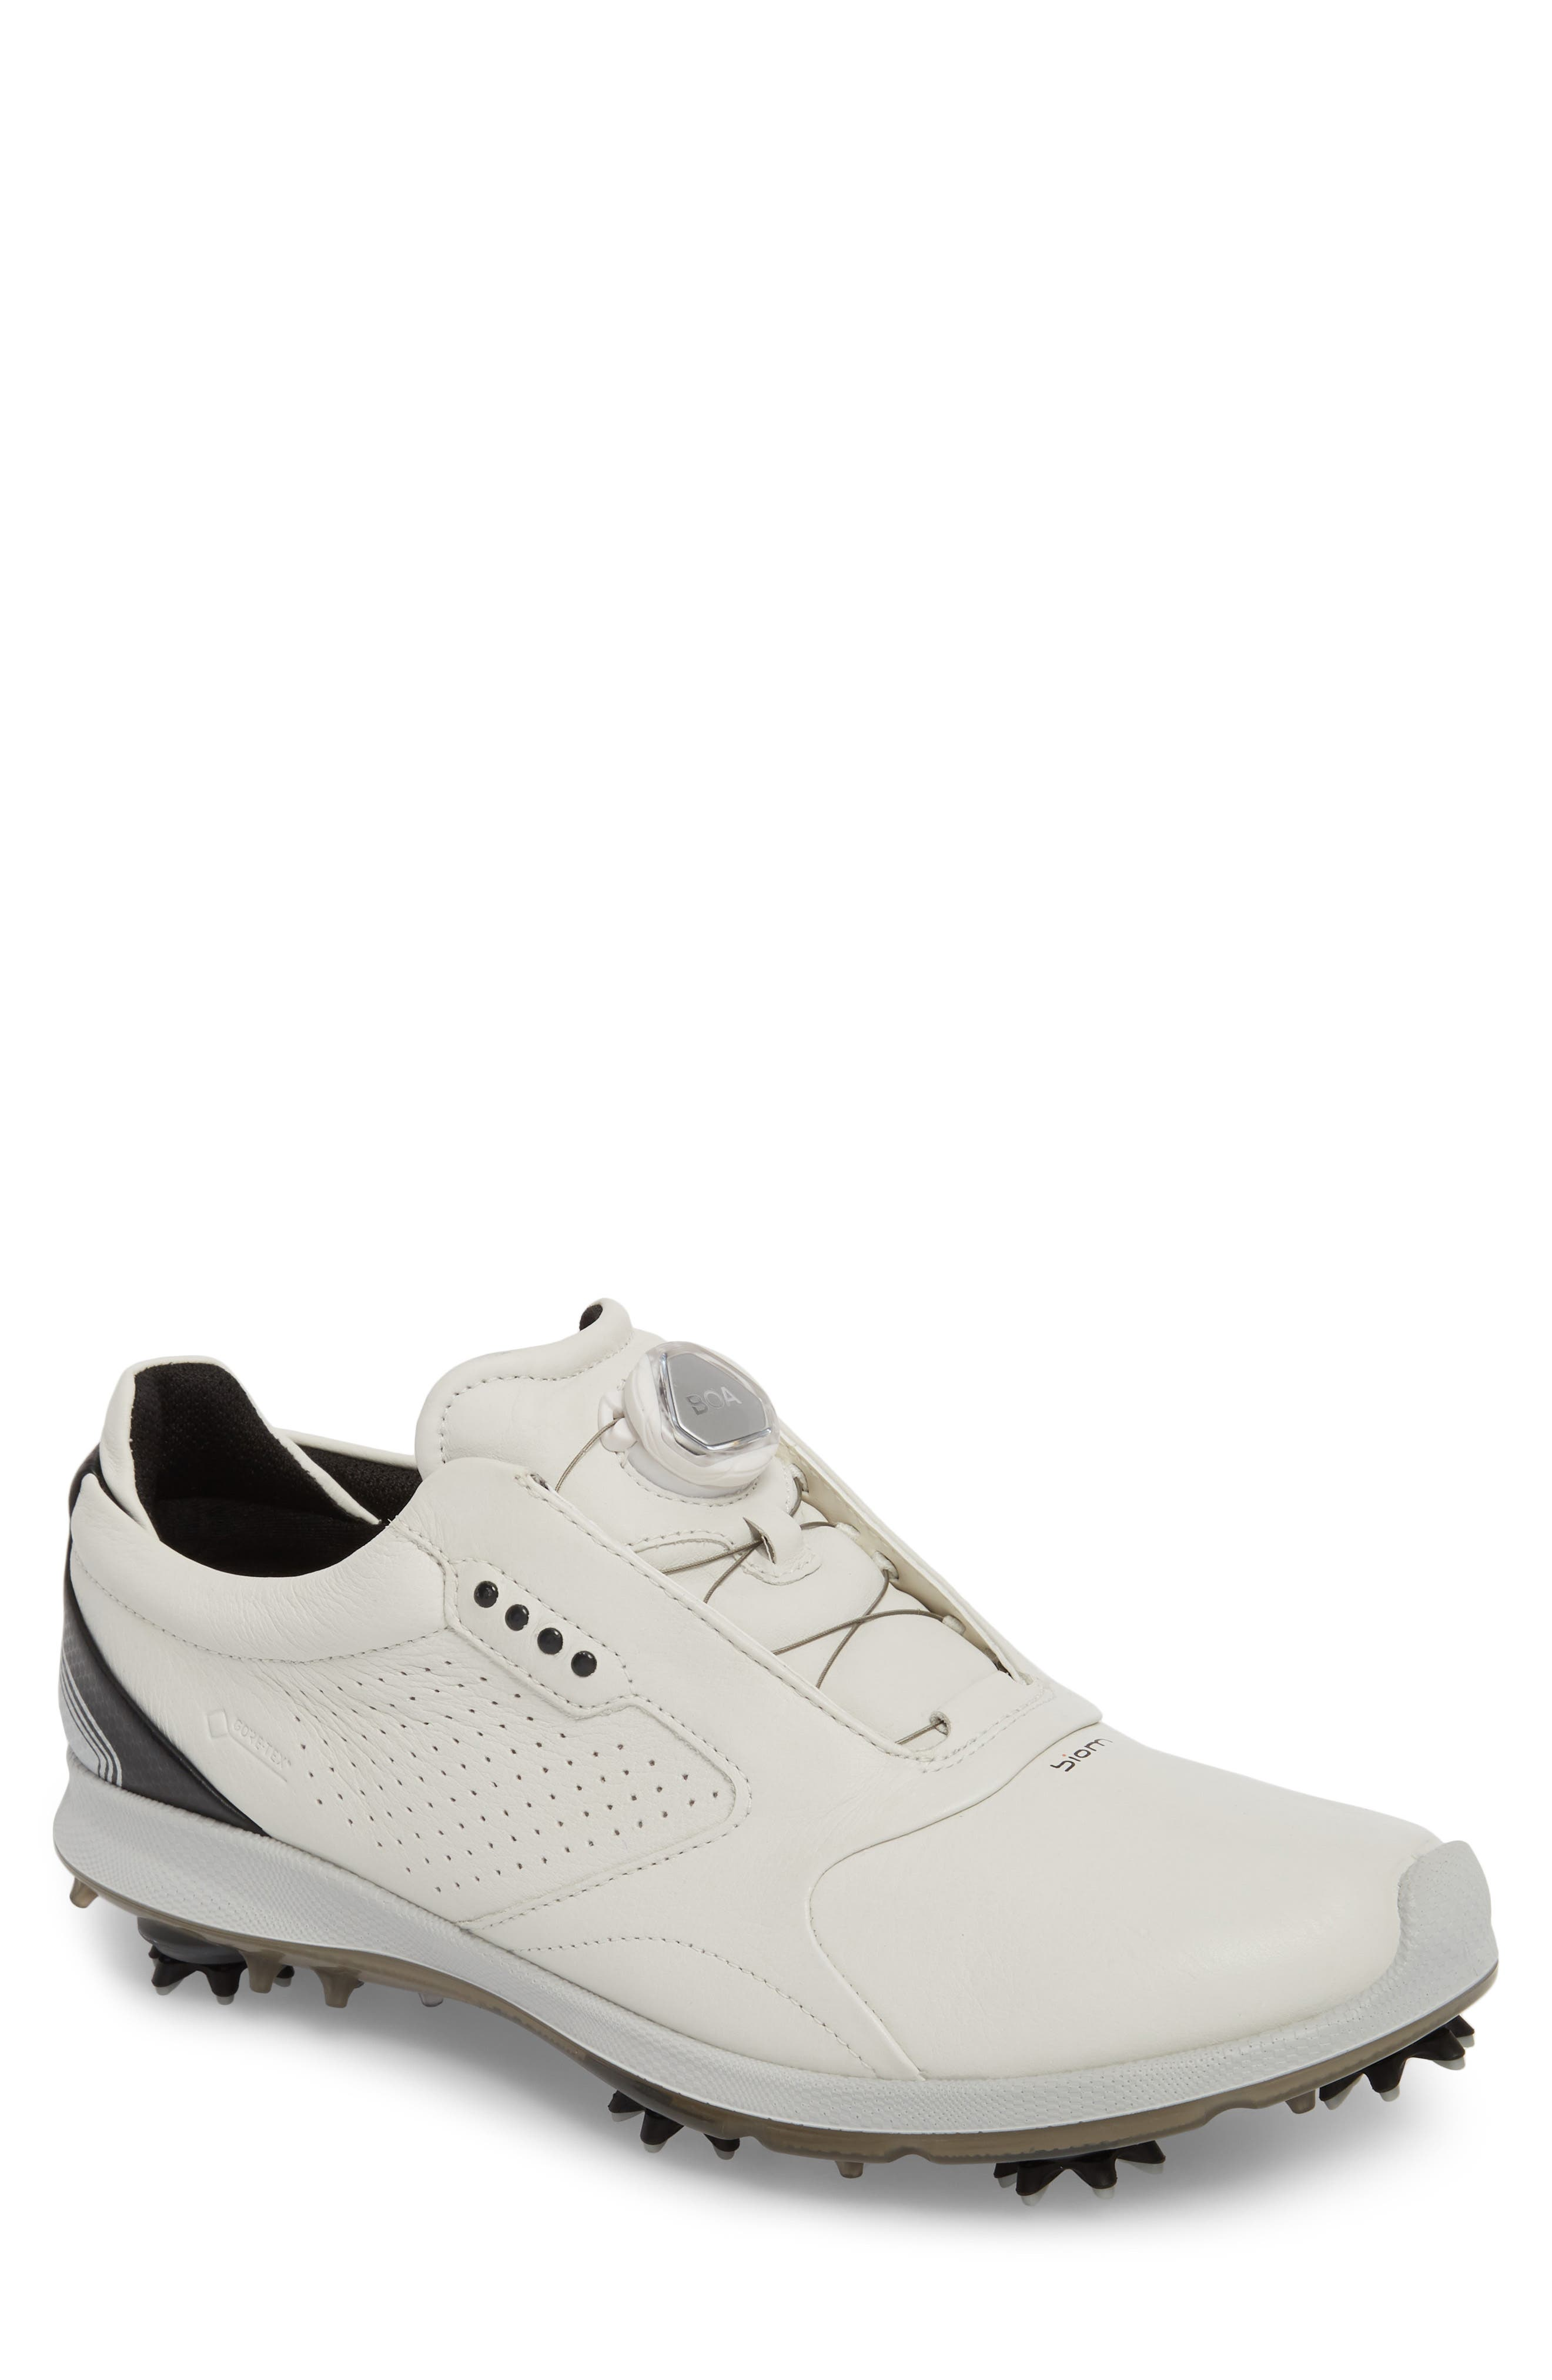 BIOM 2 BOA Gore-Tex<sup>®</sup> Golf Shoe,                             Main thumbnail 1, color,                             White/ Black Leather